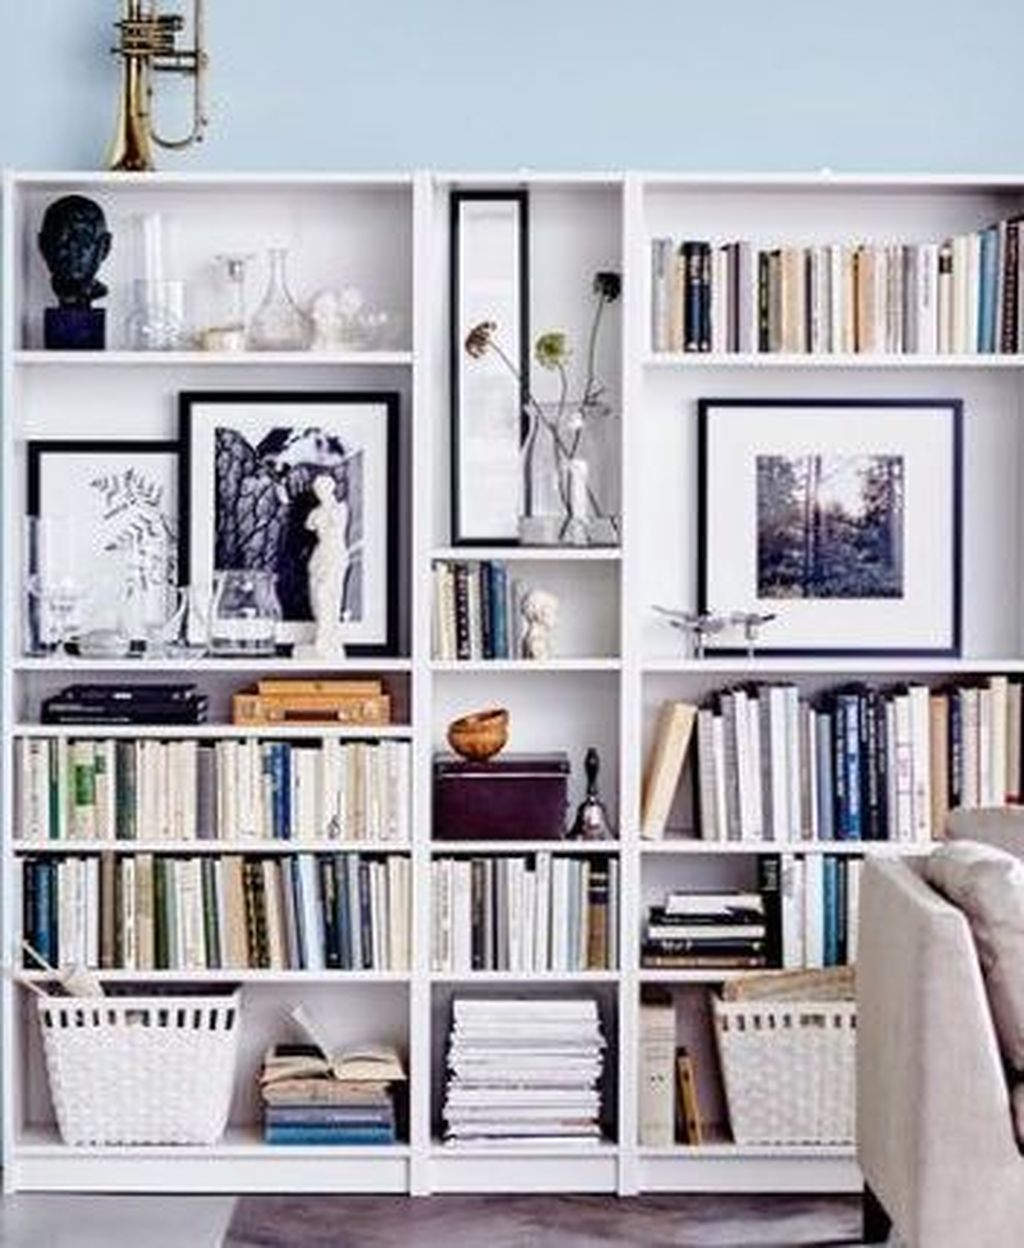 32 Latest Ikea Billy Bookcase Design Ideas For Limited Space That Will Amaze You In 2020 Bookcase Design Ikea Billy Bookcase Ikea Billy